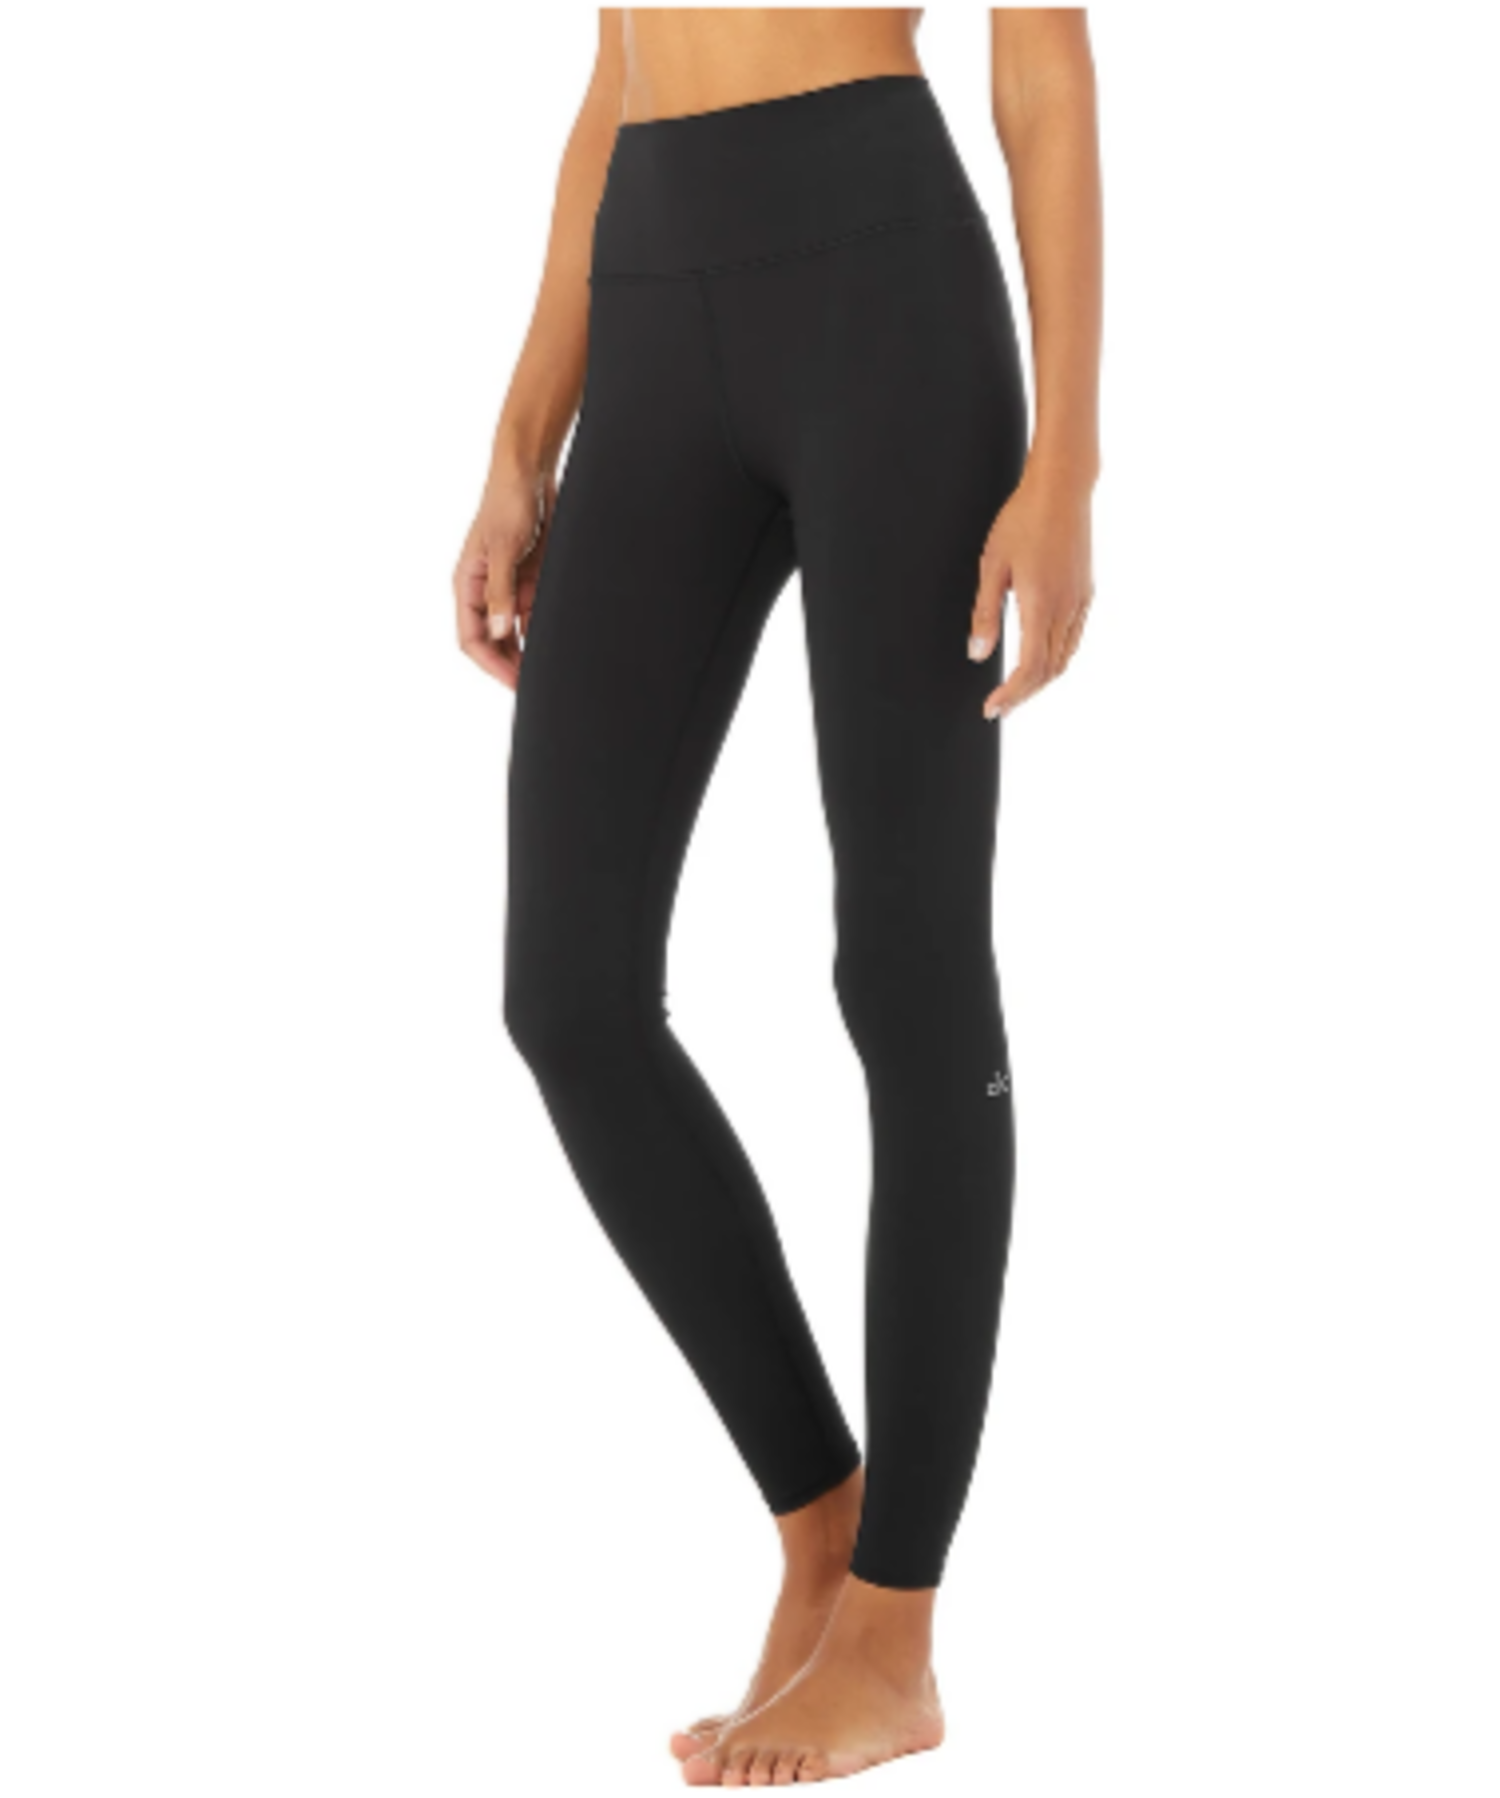 ALO HIGH-WAIST SOLID VAPOR LEGGING